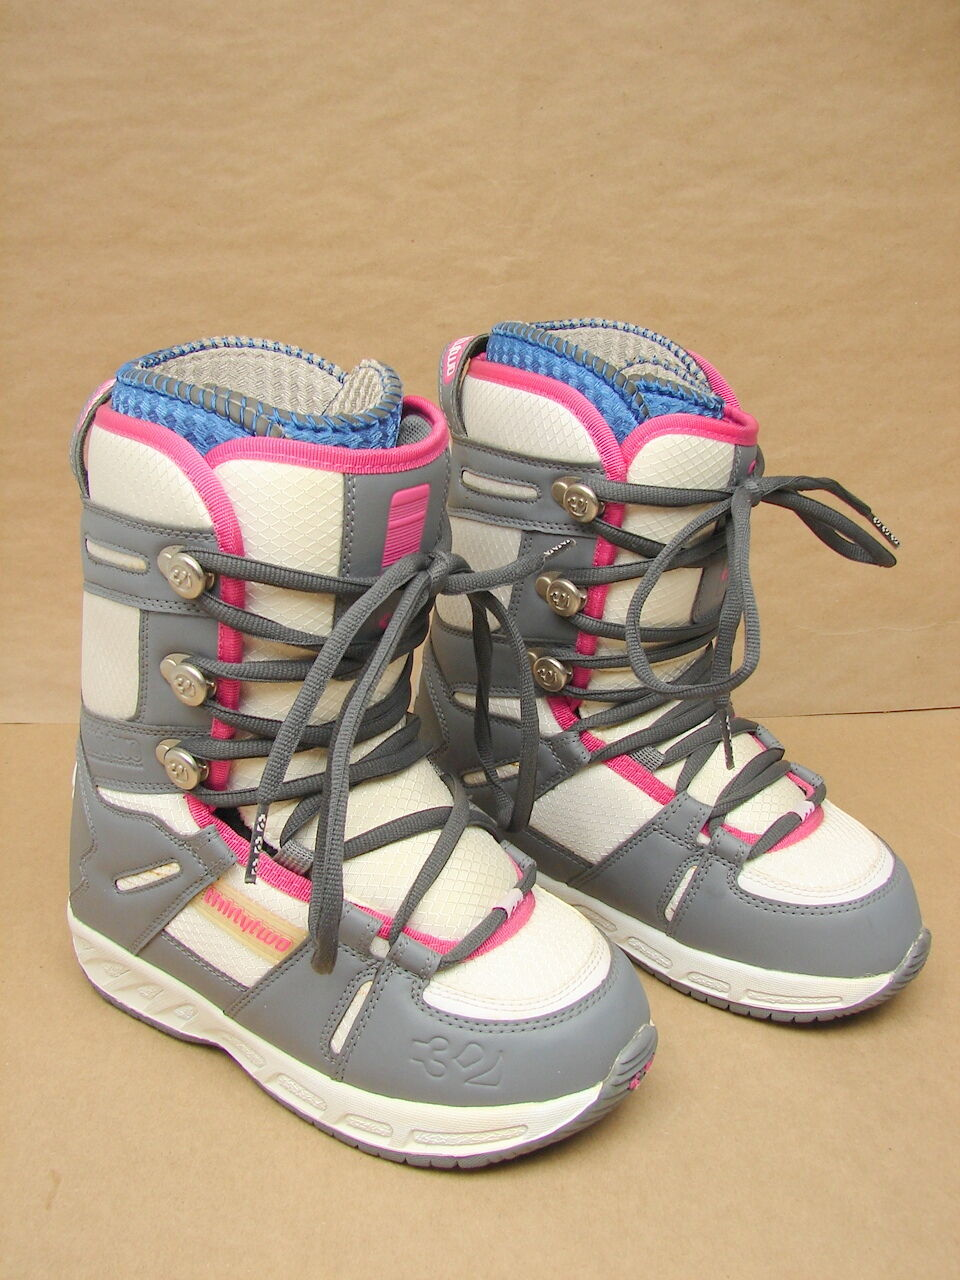 New NOS Thirty Two 32 Womens Prion Snowboard Boots US 5